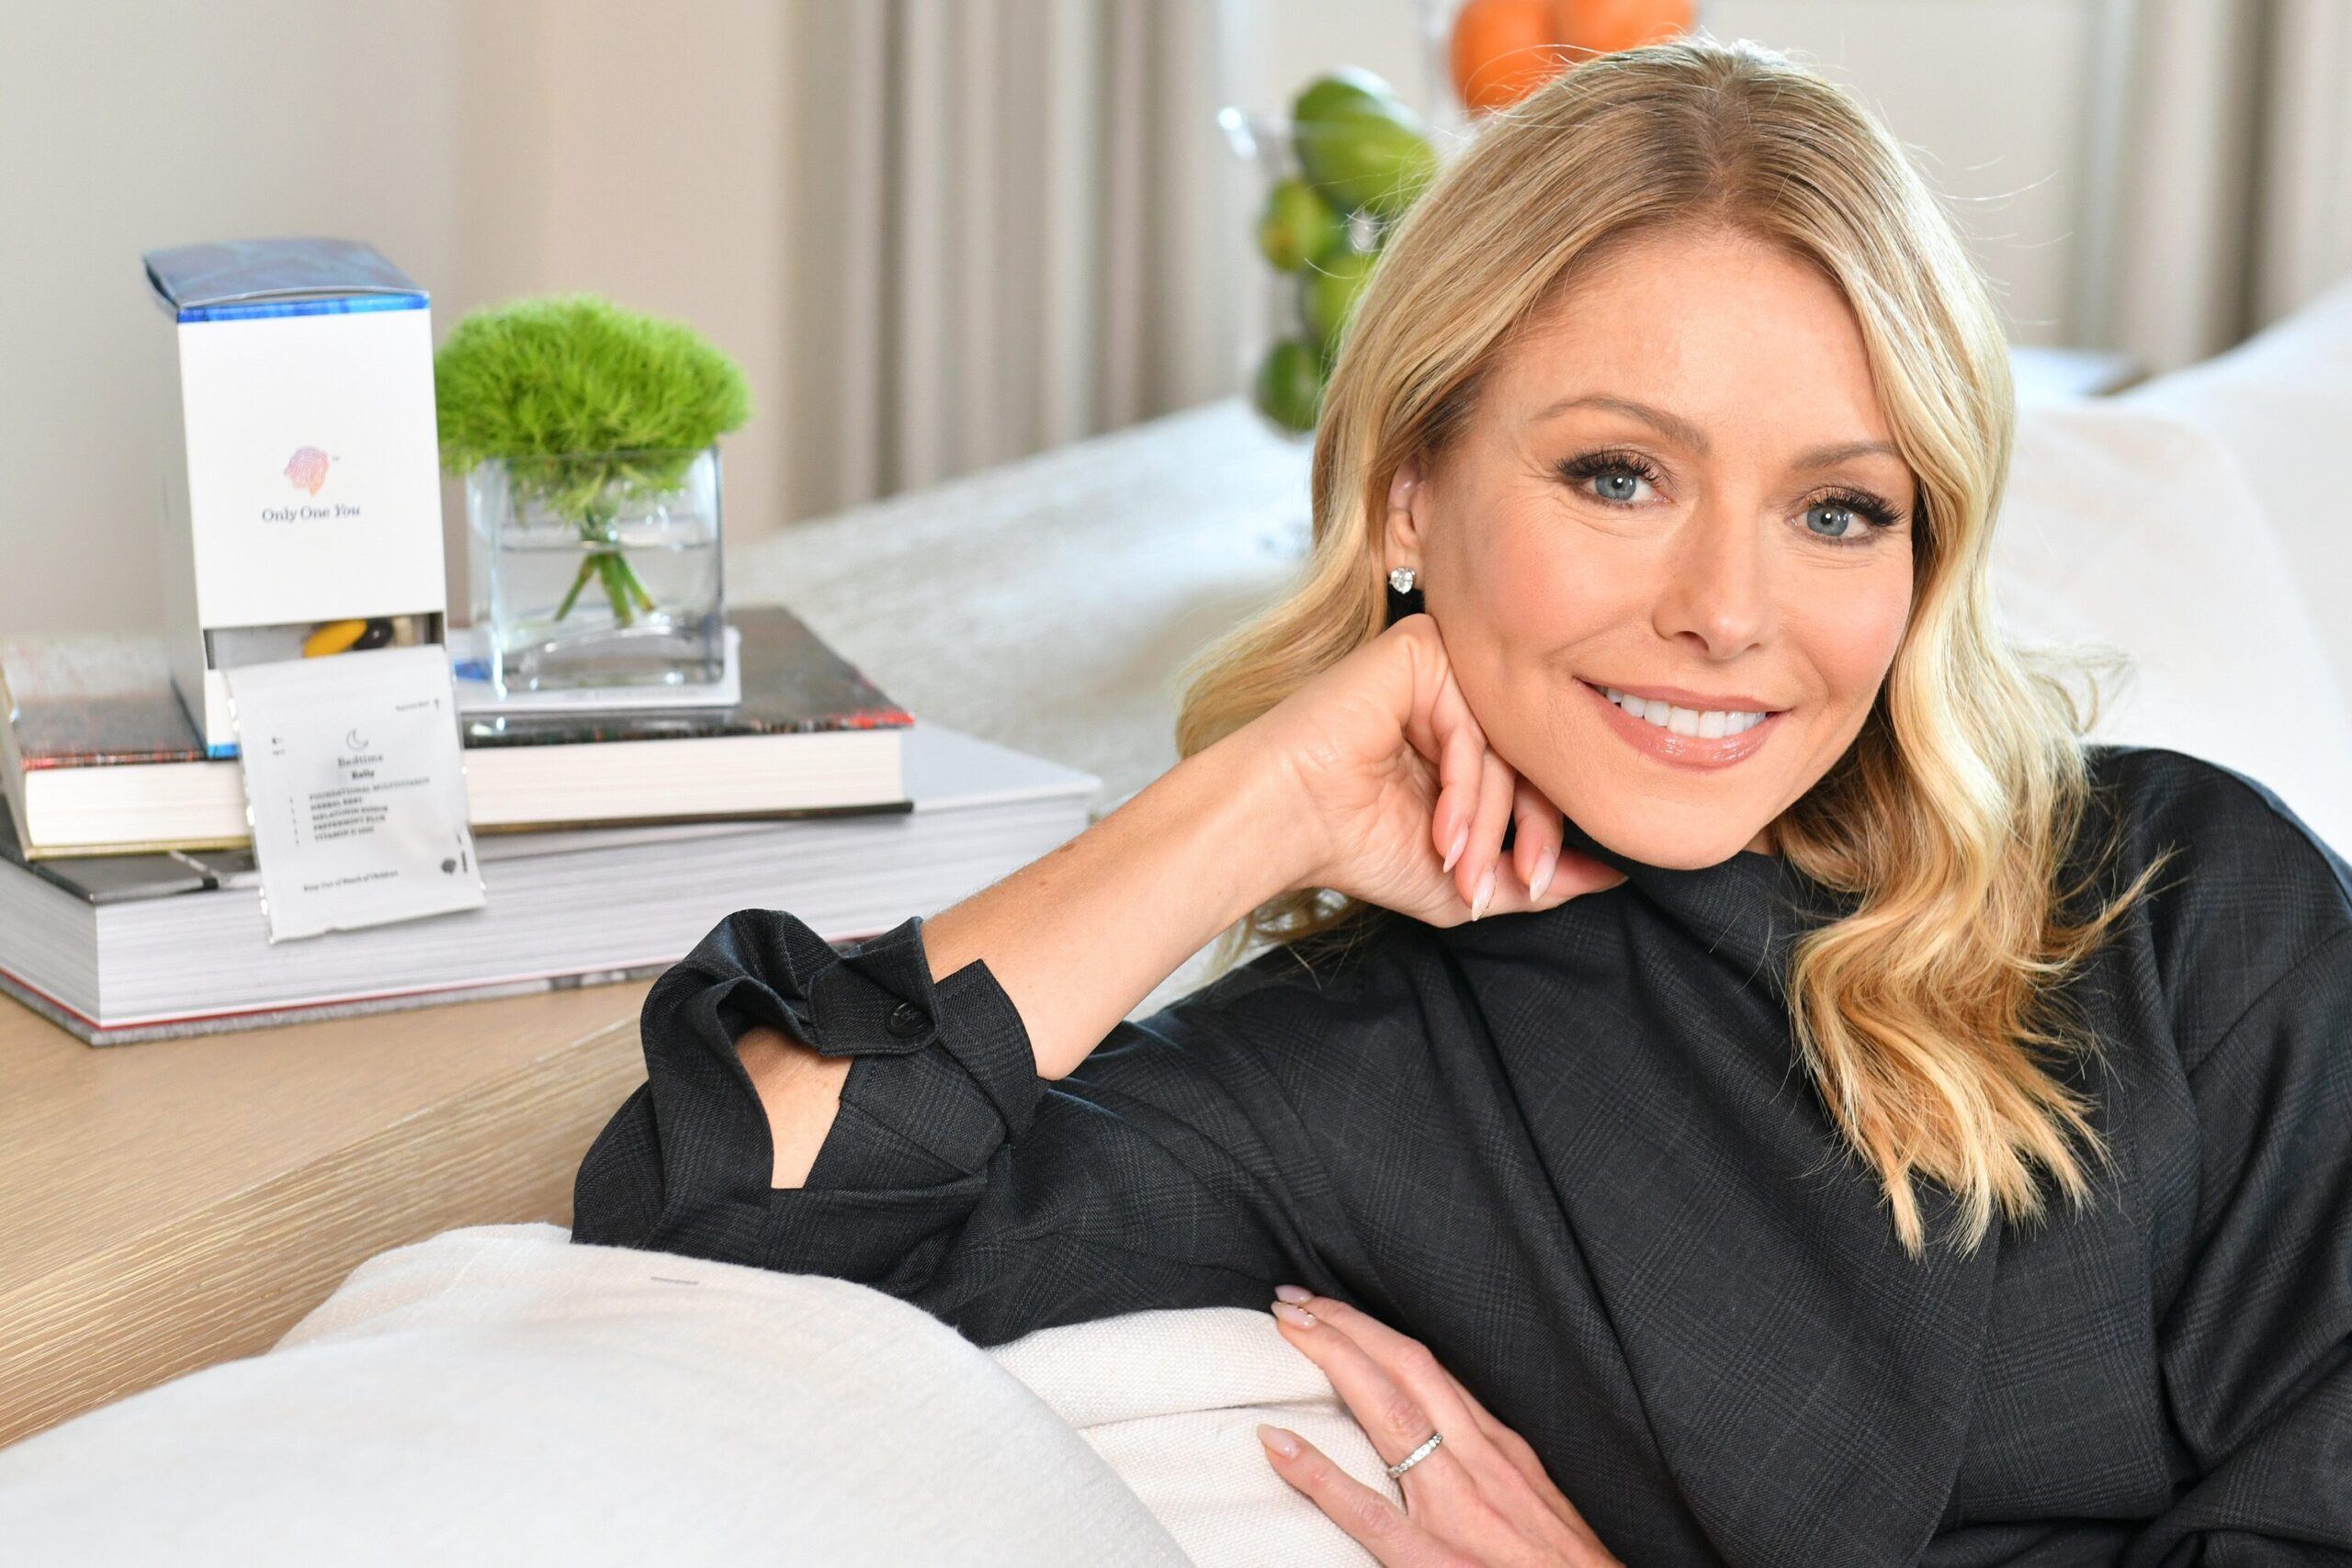 Kelly Ripa celebrates daughter Lola's first time voting in US election